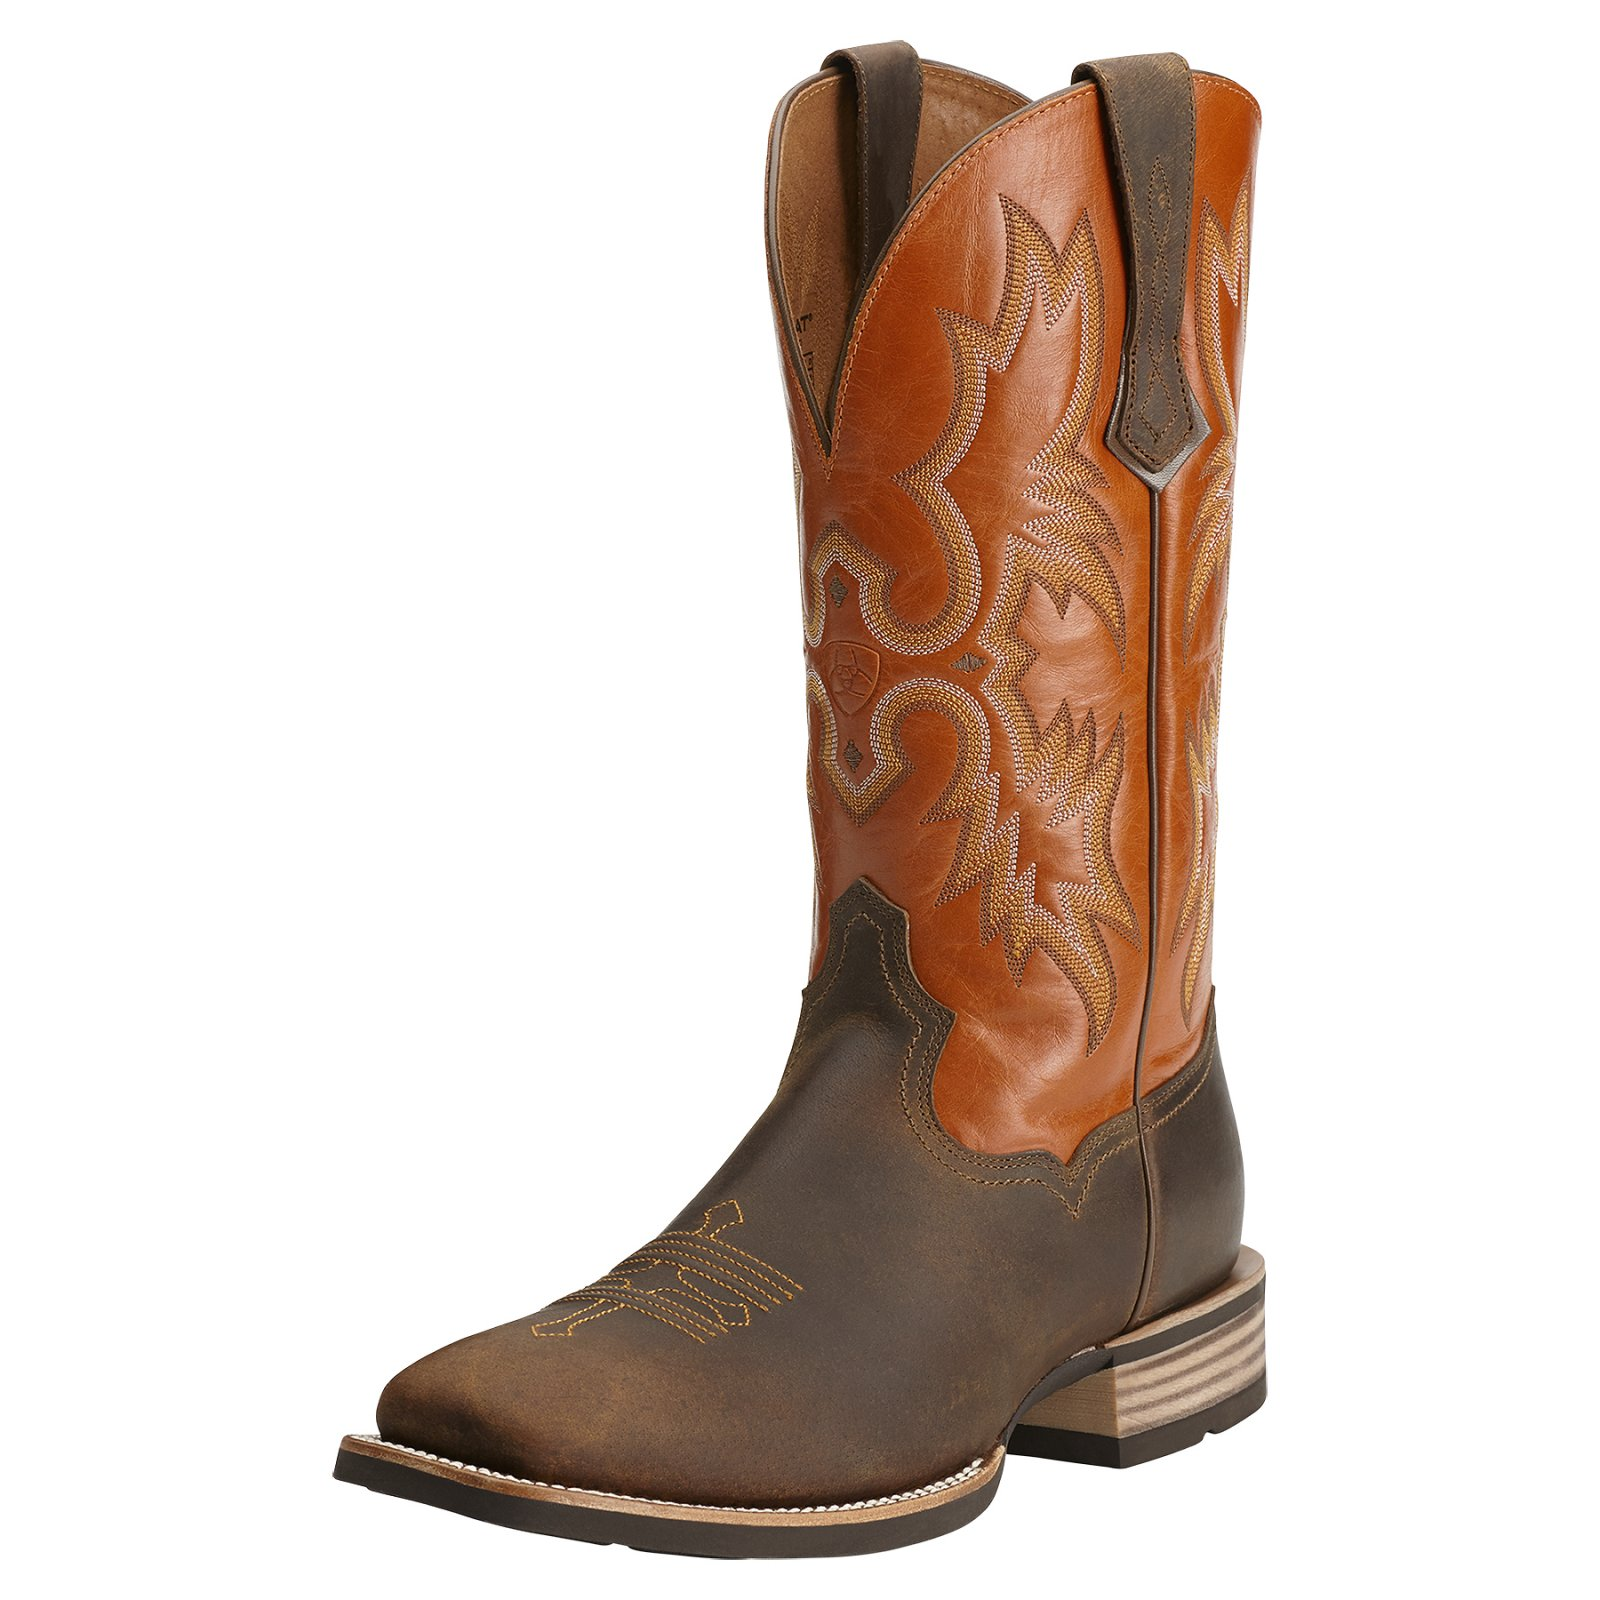 Tombstone Boot from Ariat